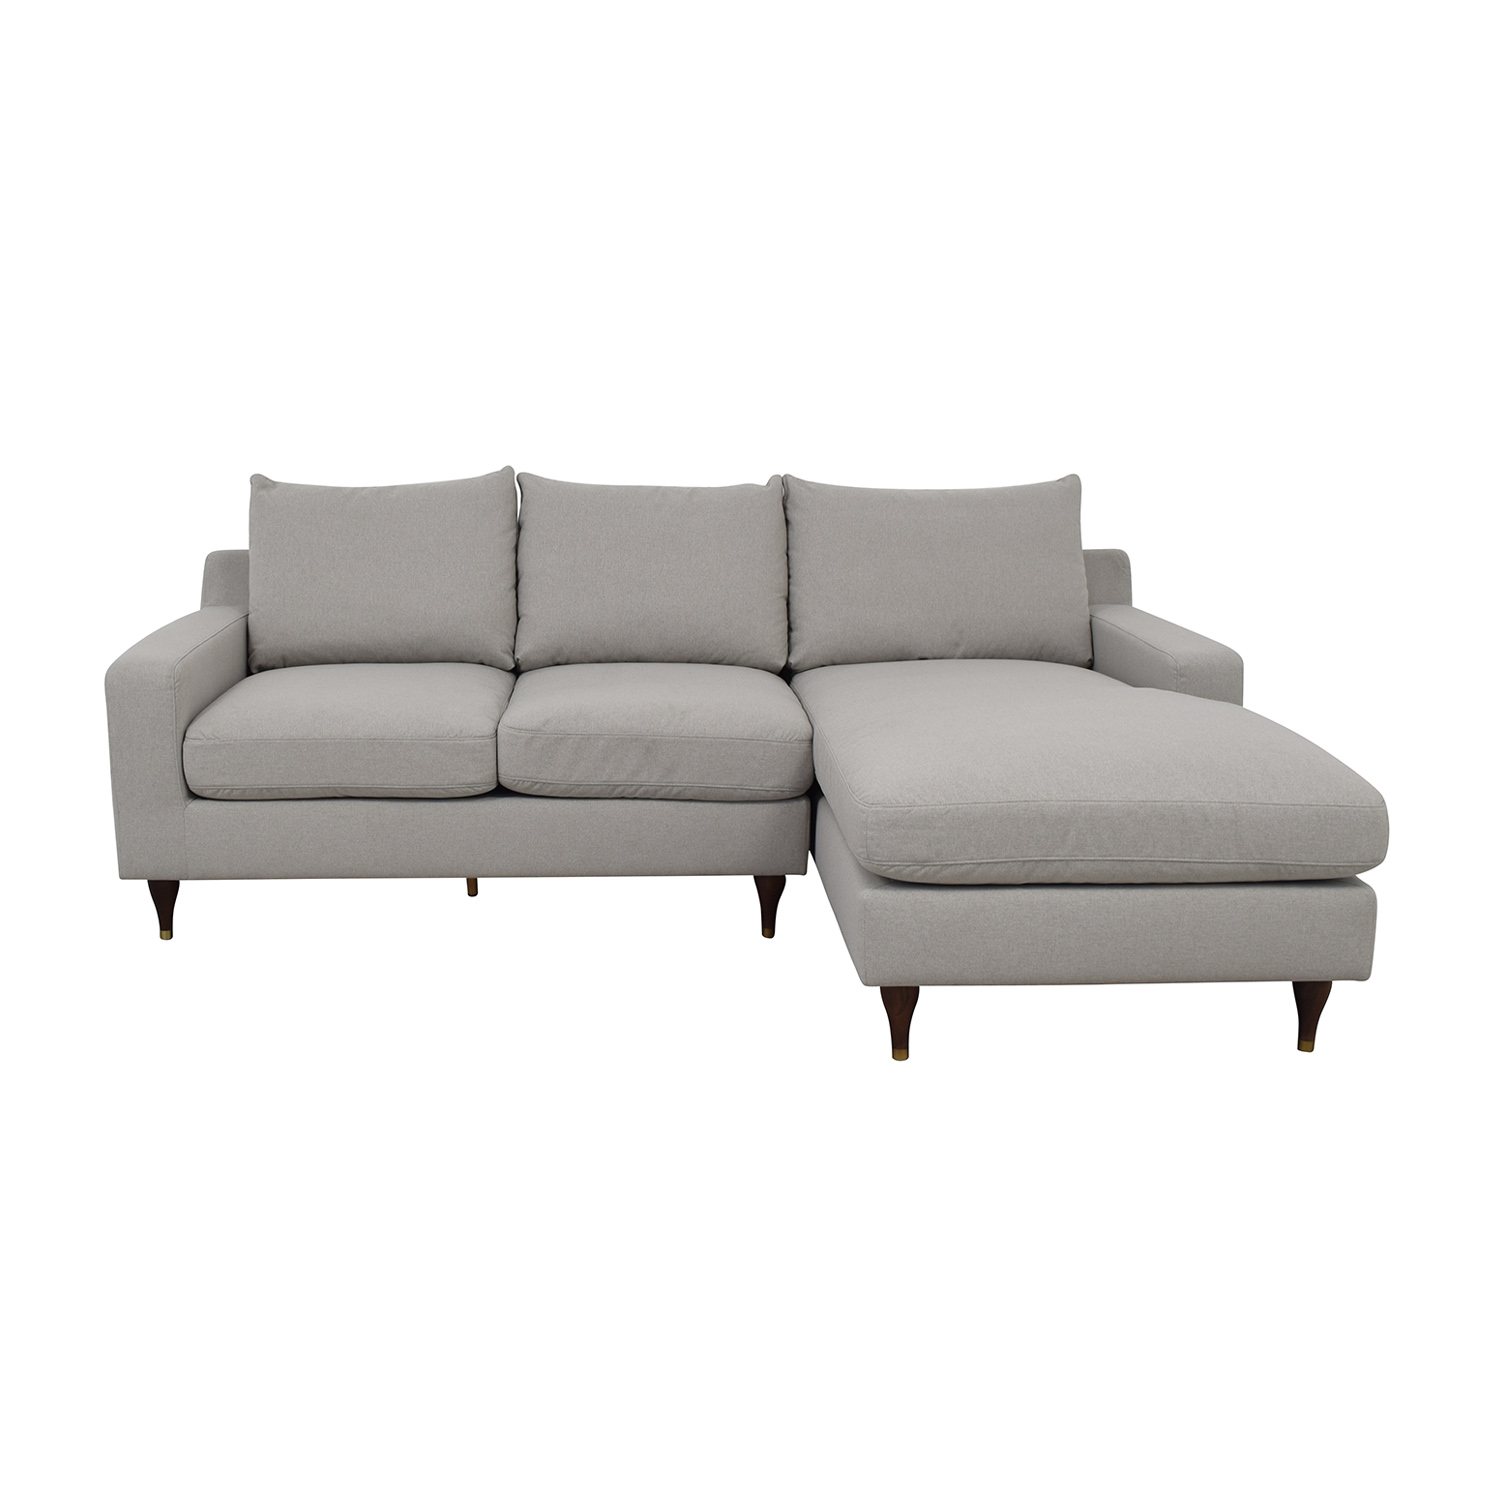 Sloan Beige Plush Right Chaise Sectional nyc